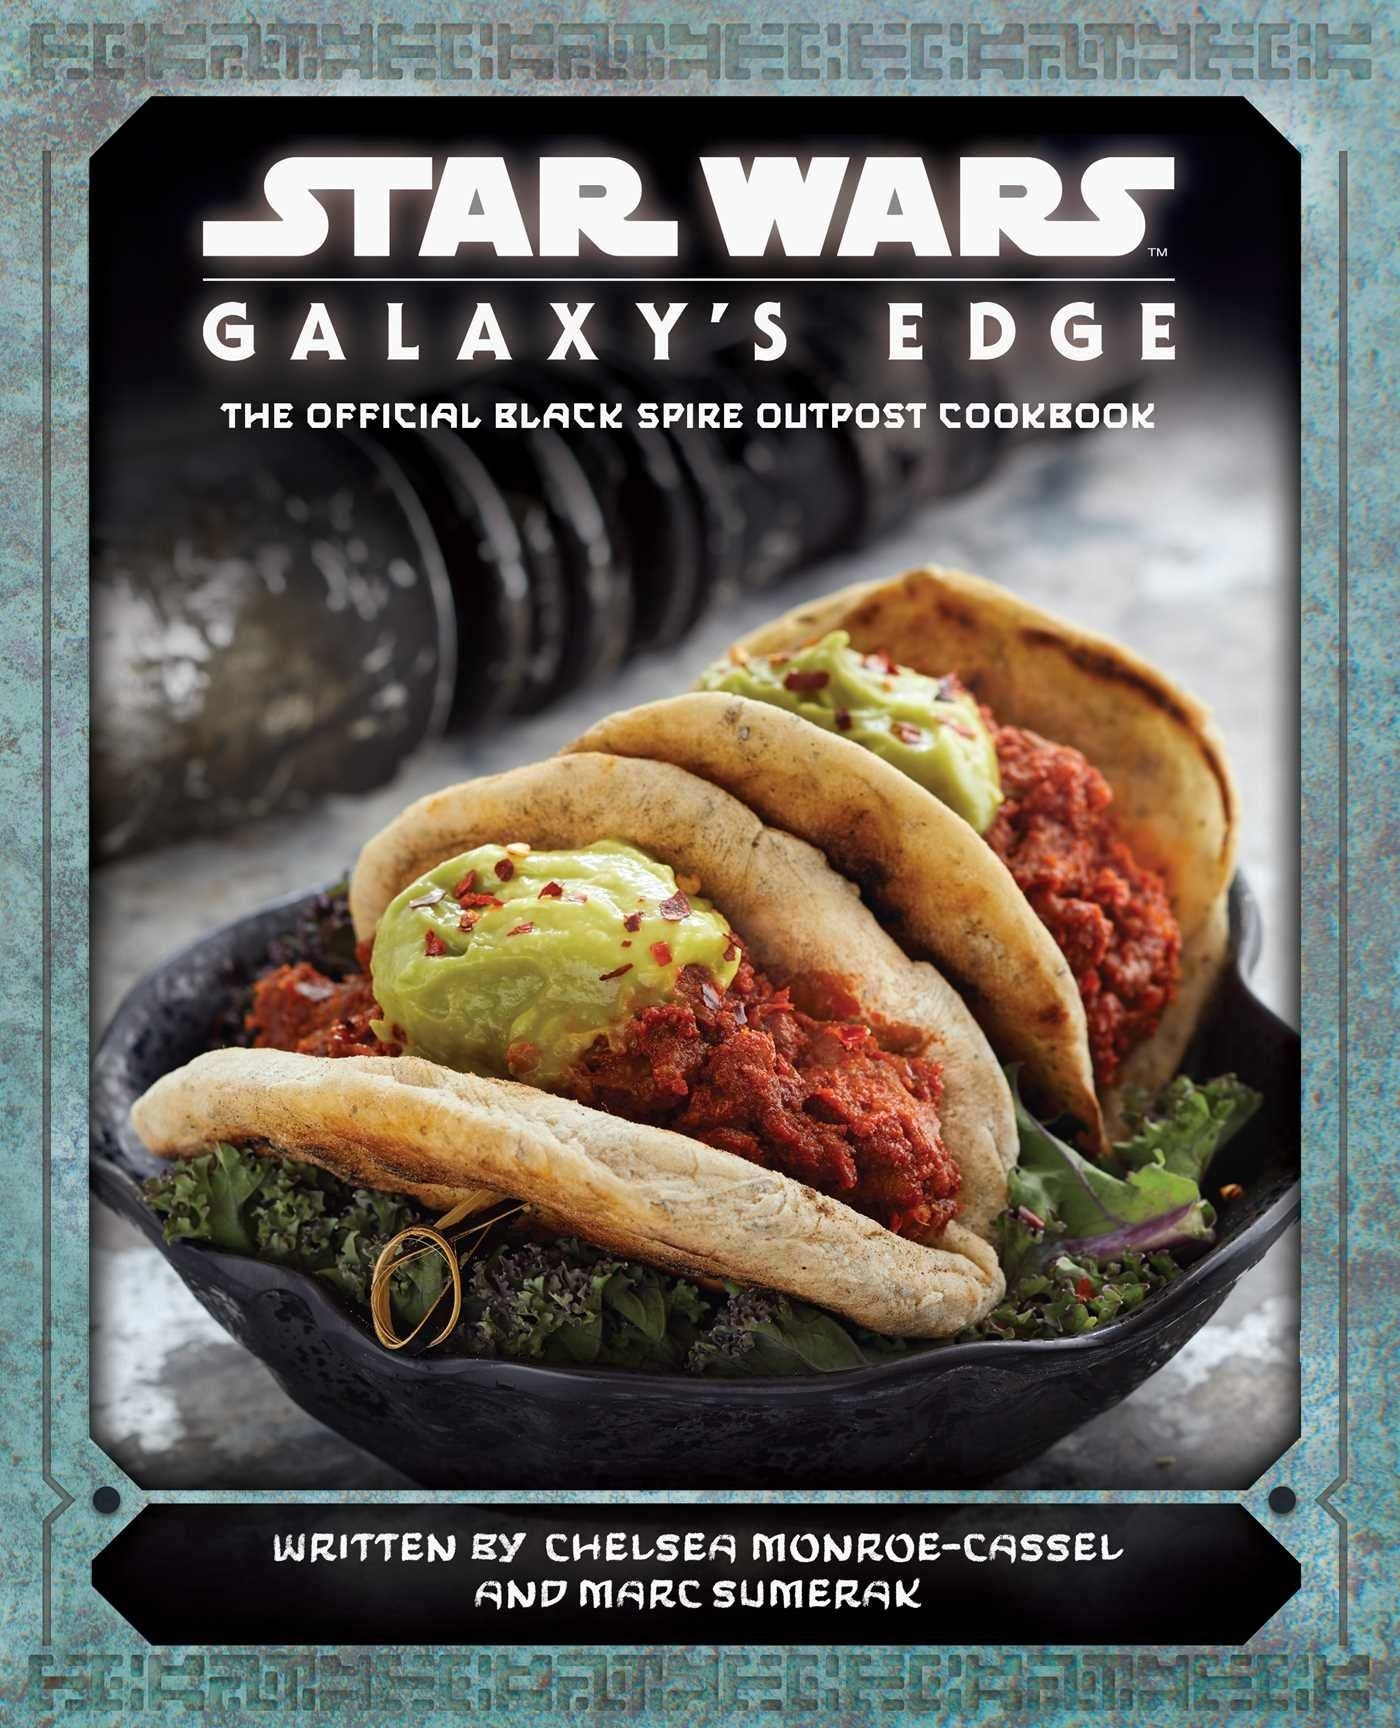 cover of book showing two taco-like meals served on top of mixed greens